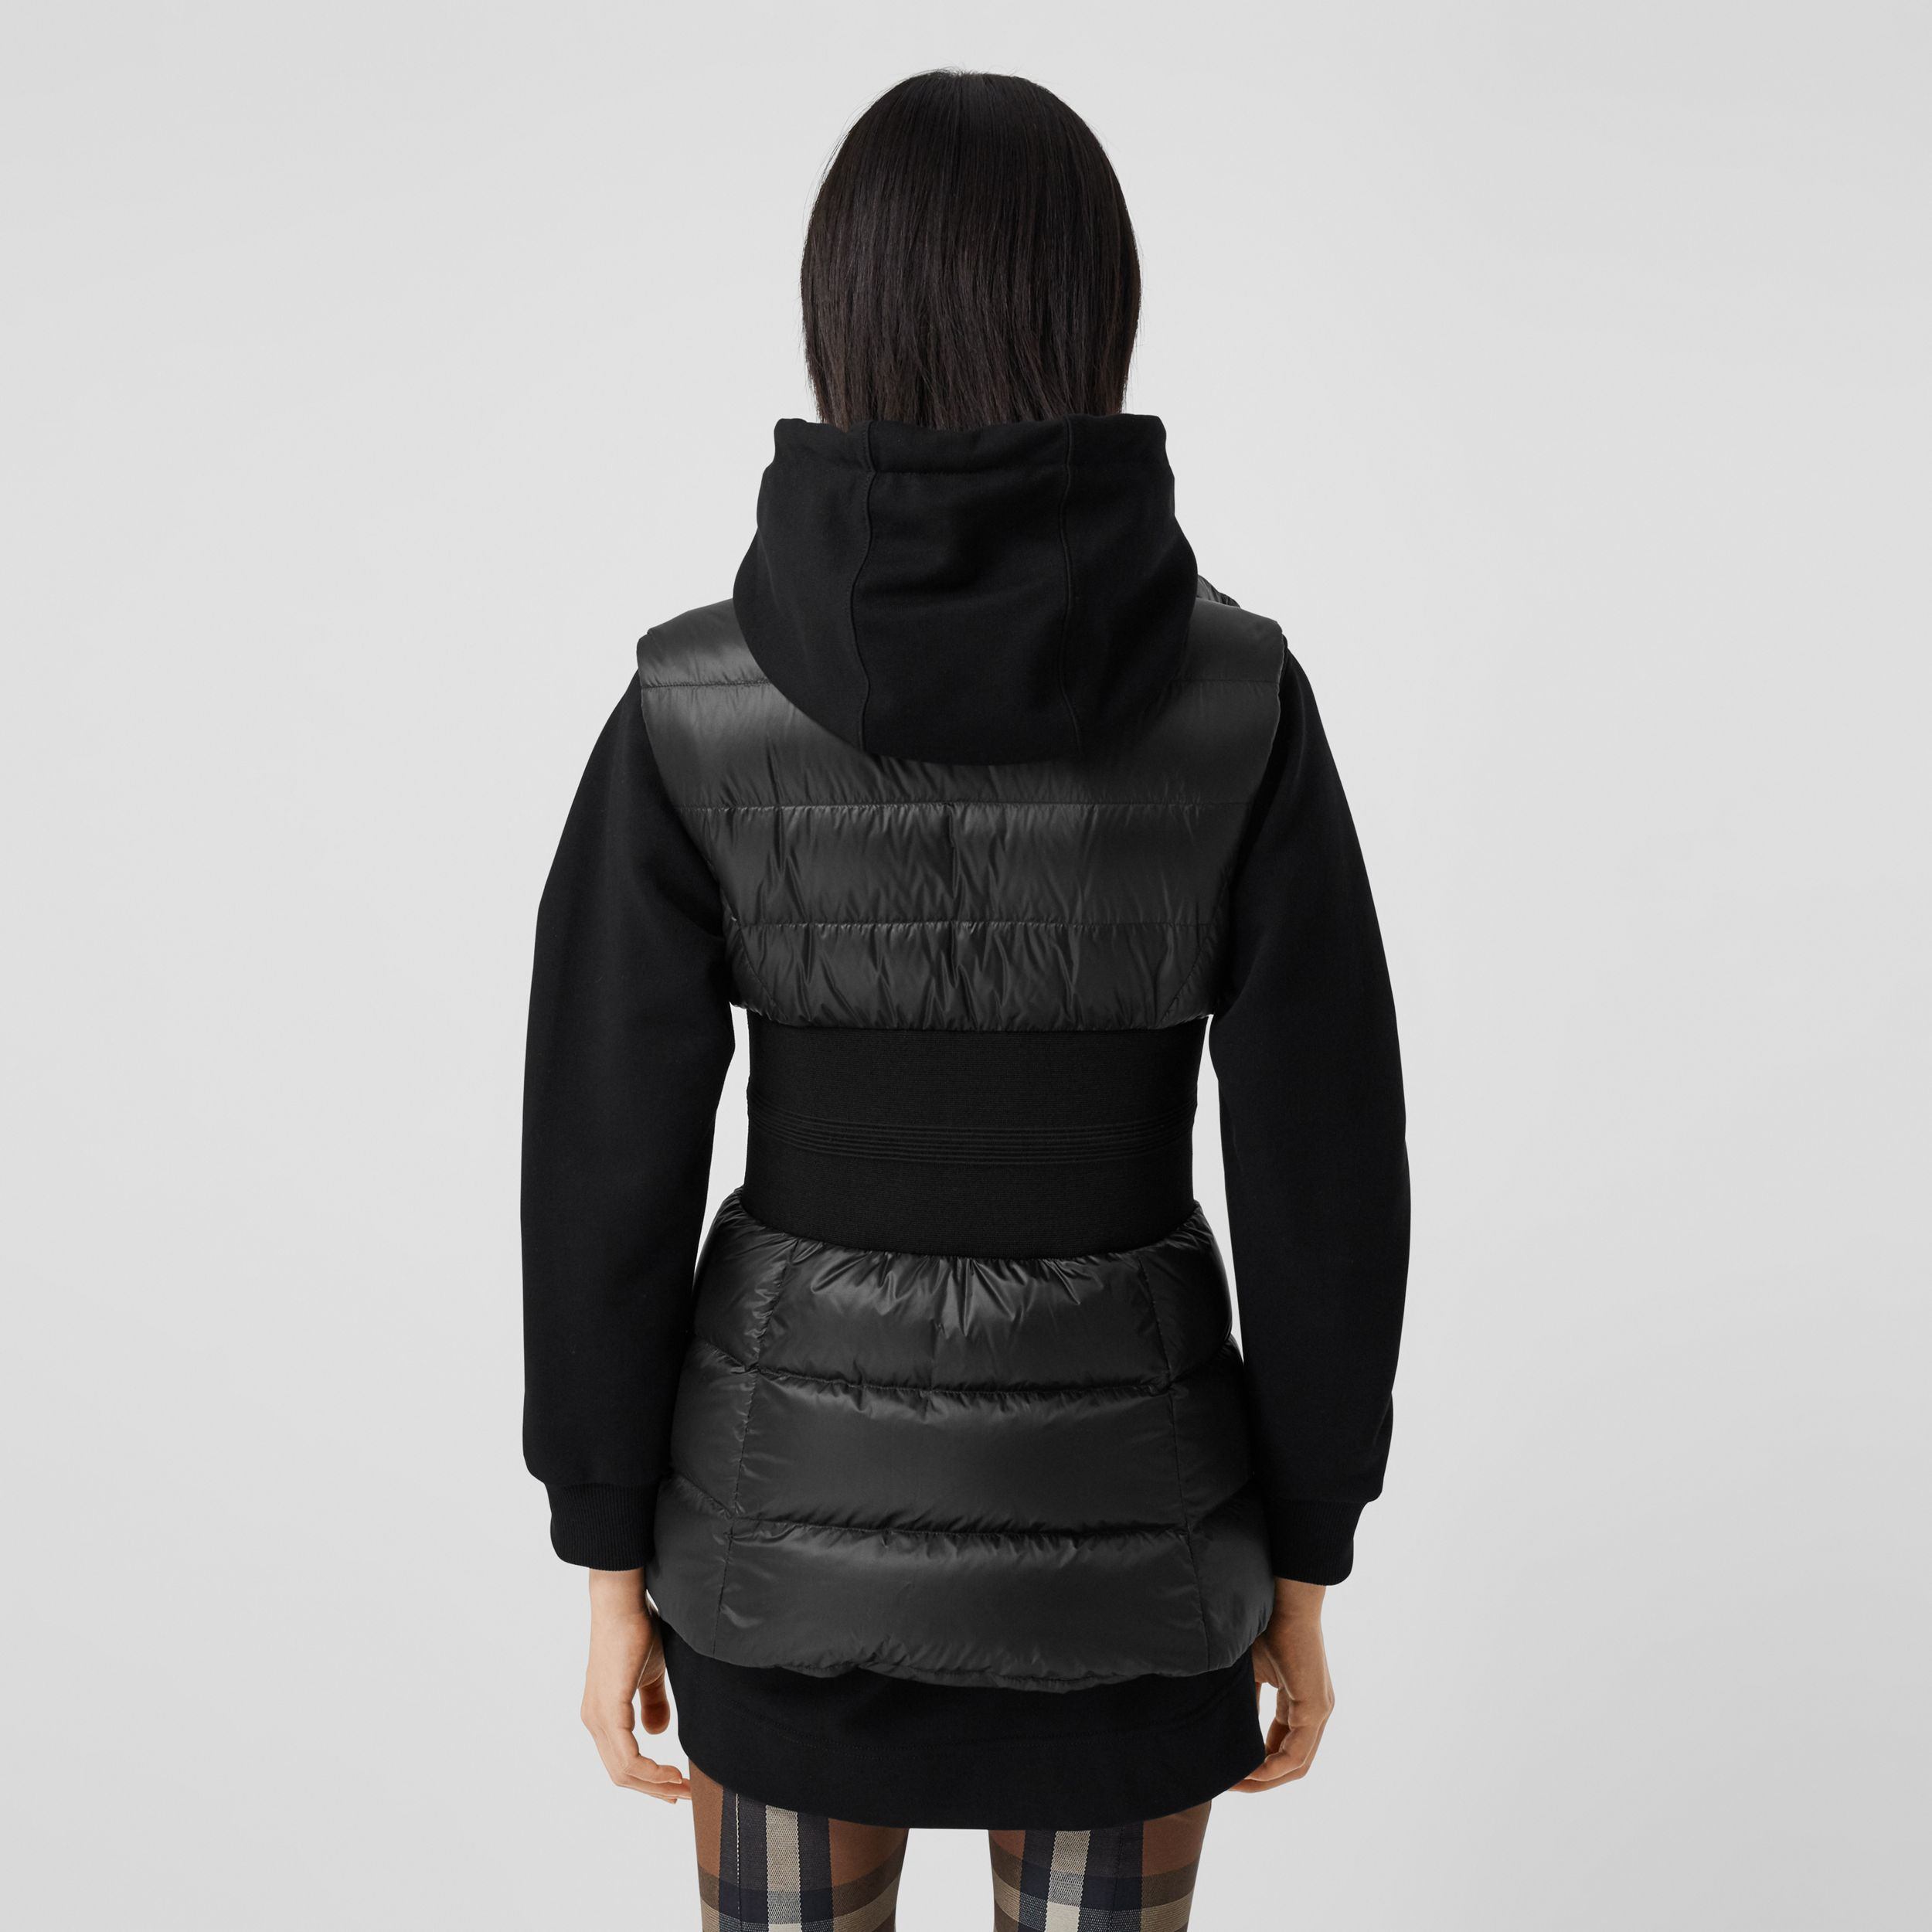 Rib Knit Panel ECONYL® Puffer Gilet in Black - Women | Burberry - 3